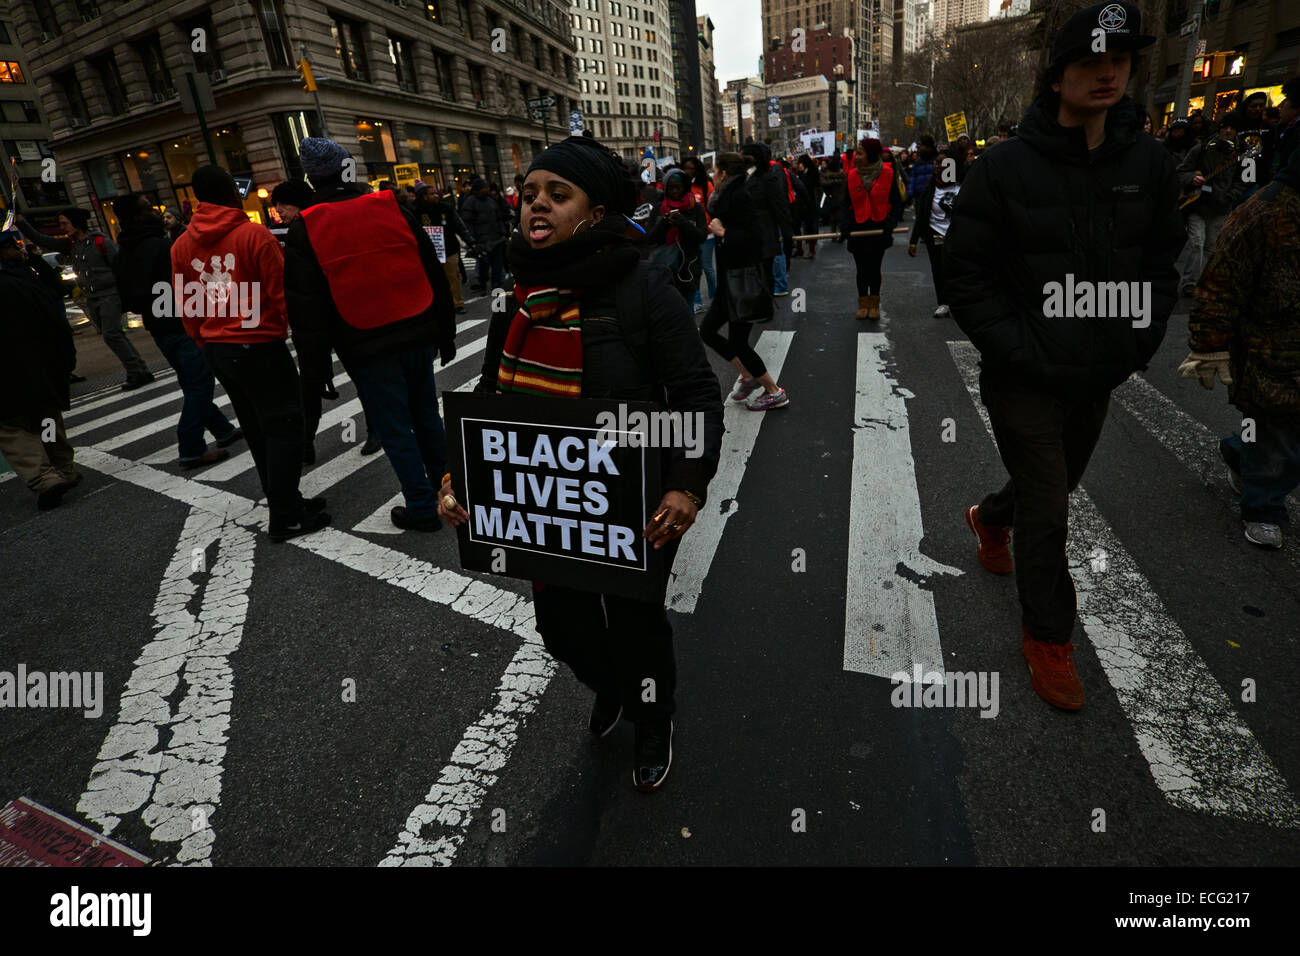 New York, USA. 13th December, 2014. A woman holding a sign reading, 'Black lives matter' was one of thousands - Stock Image